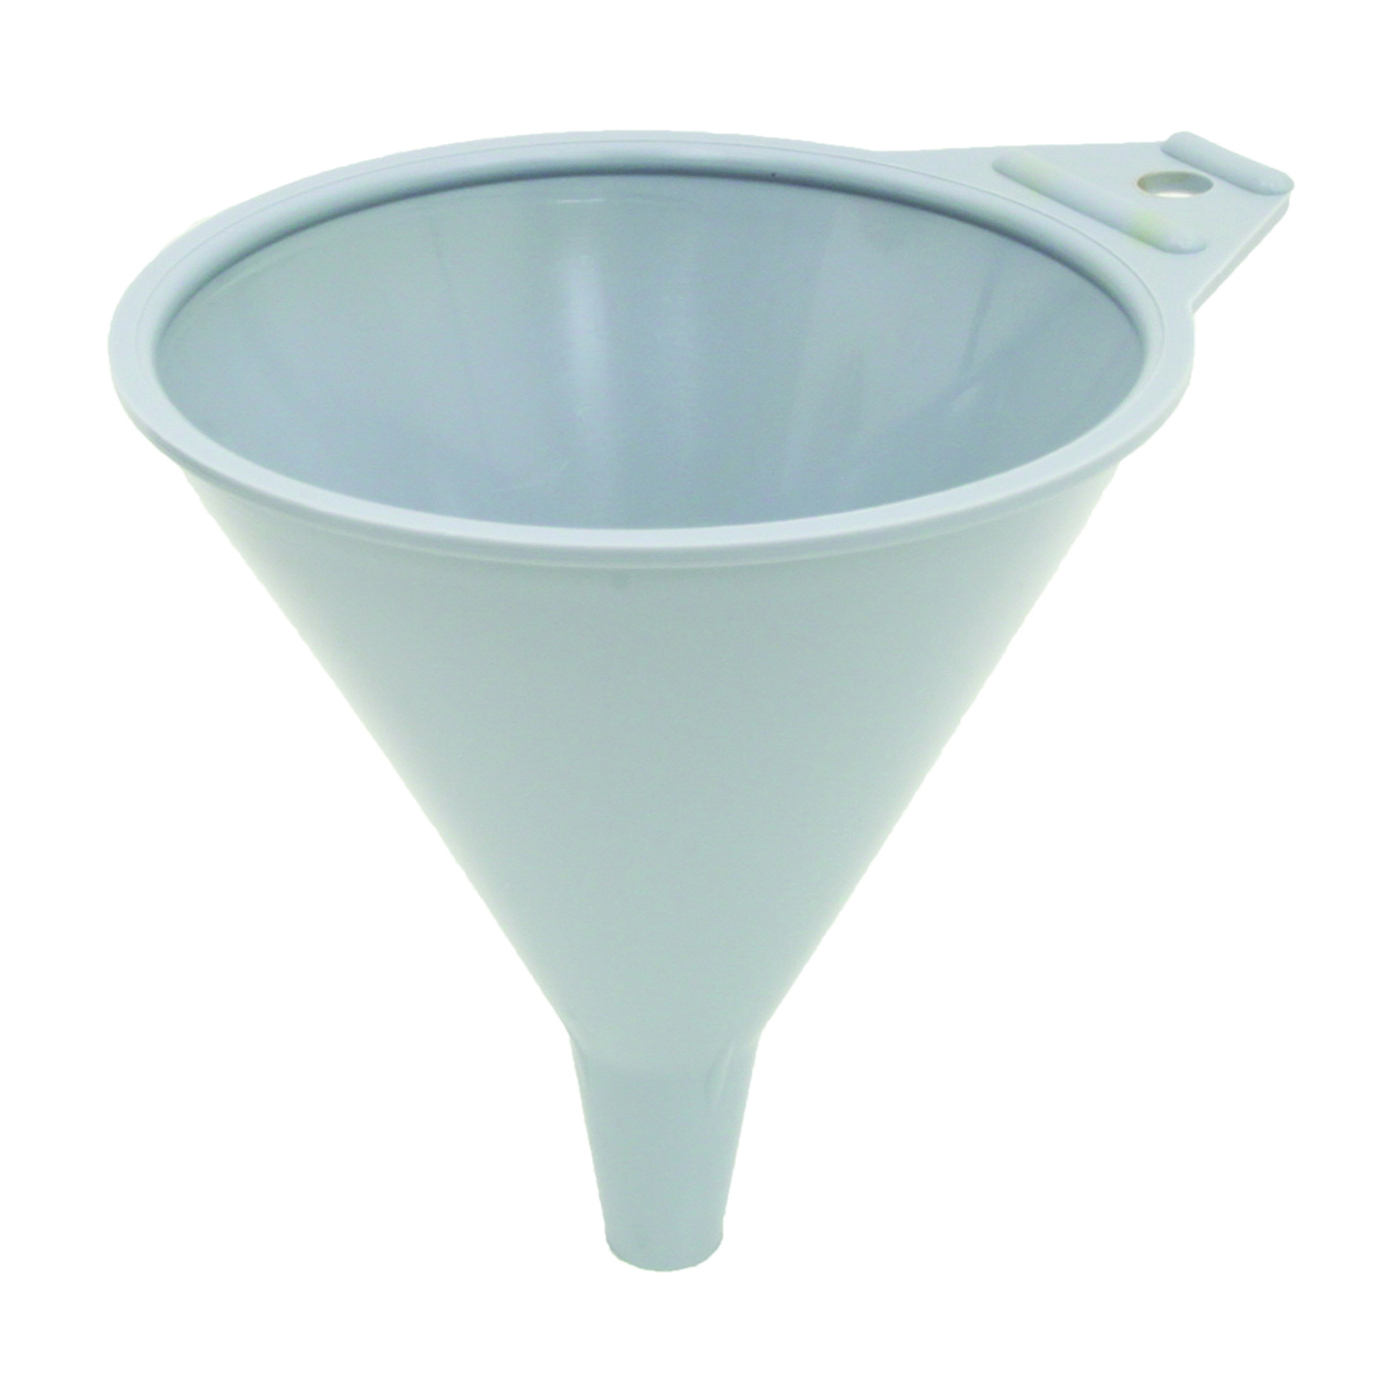 Picture of FloTool 05007 Small Funnel, 0.5 pt Capacity, HDPE, Gray, 4-3/4 in H